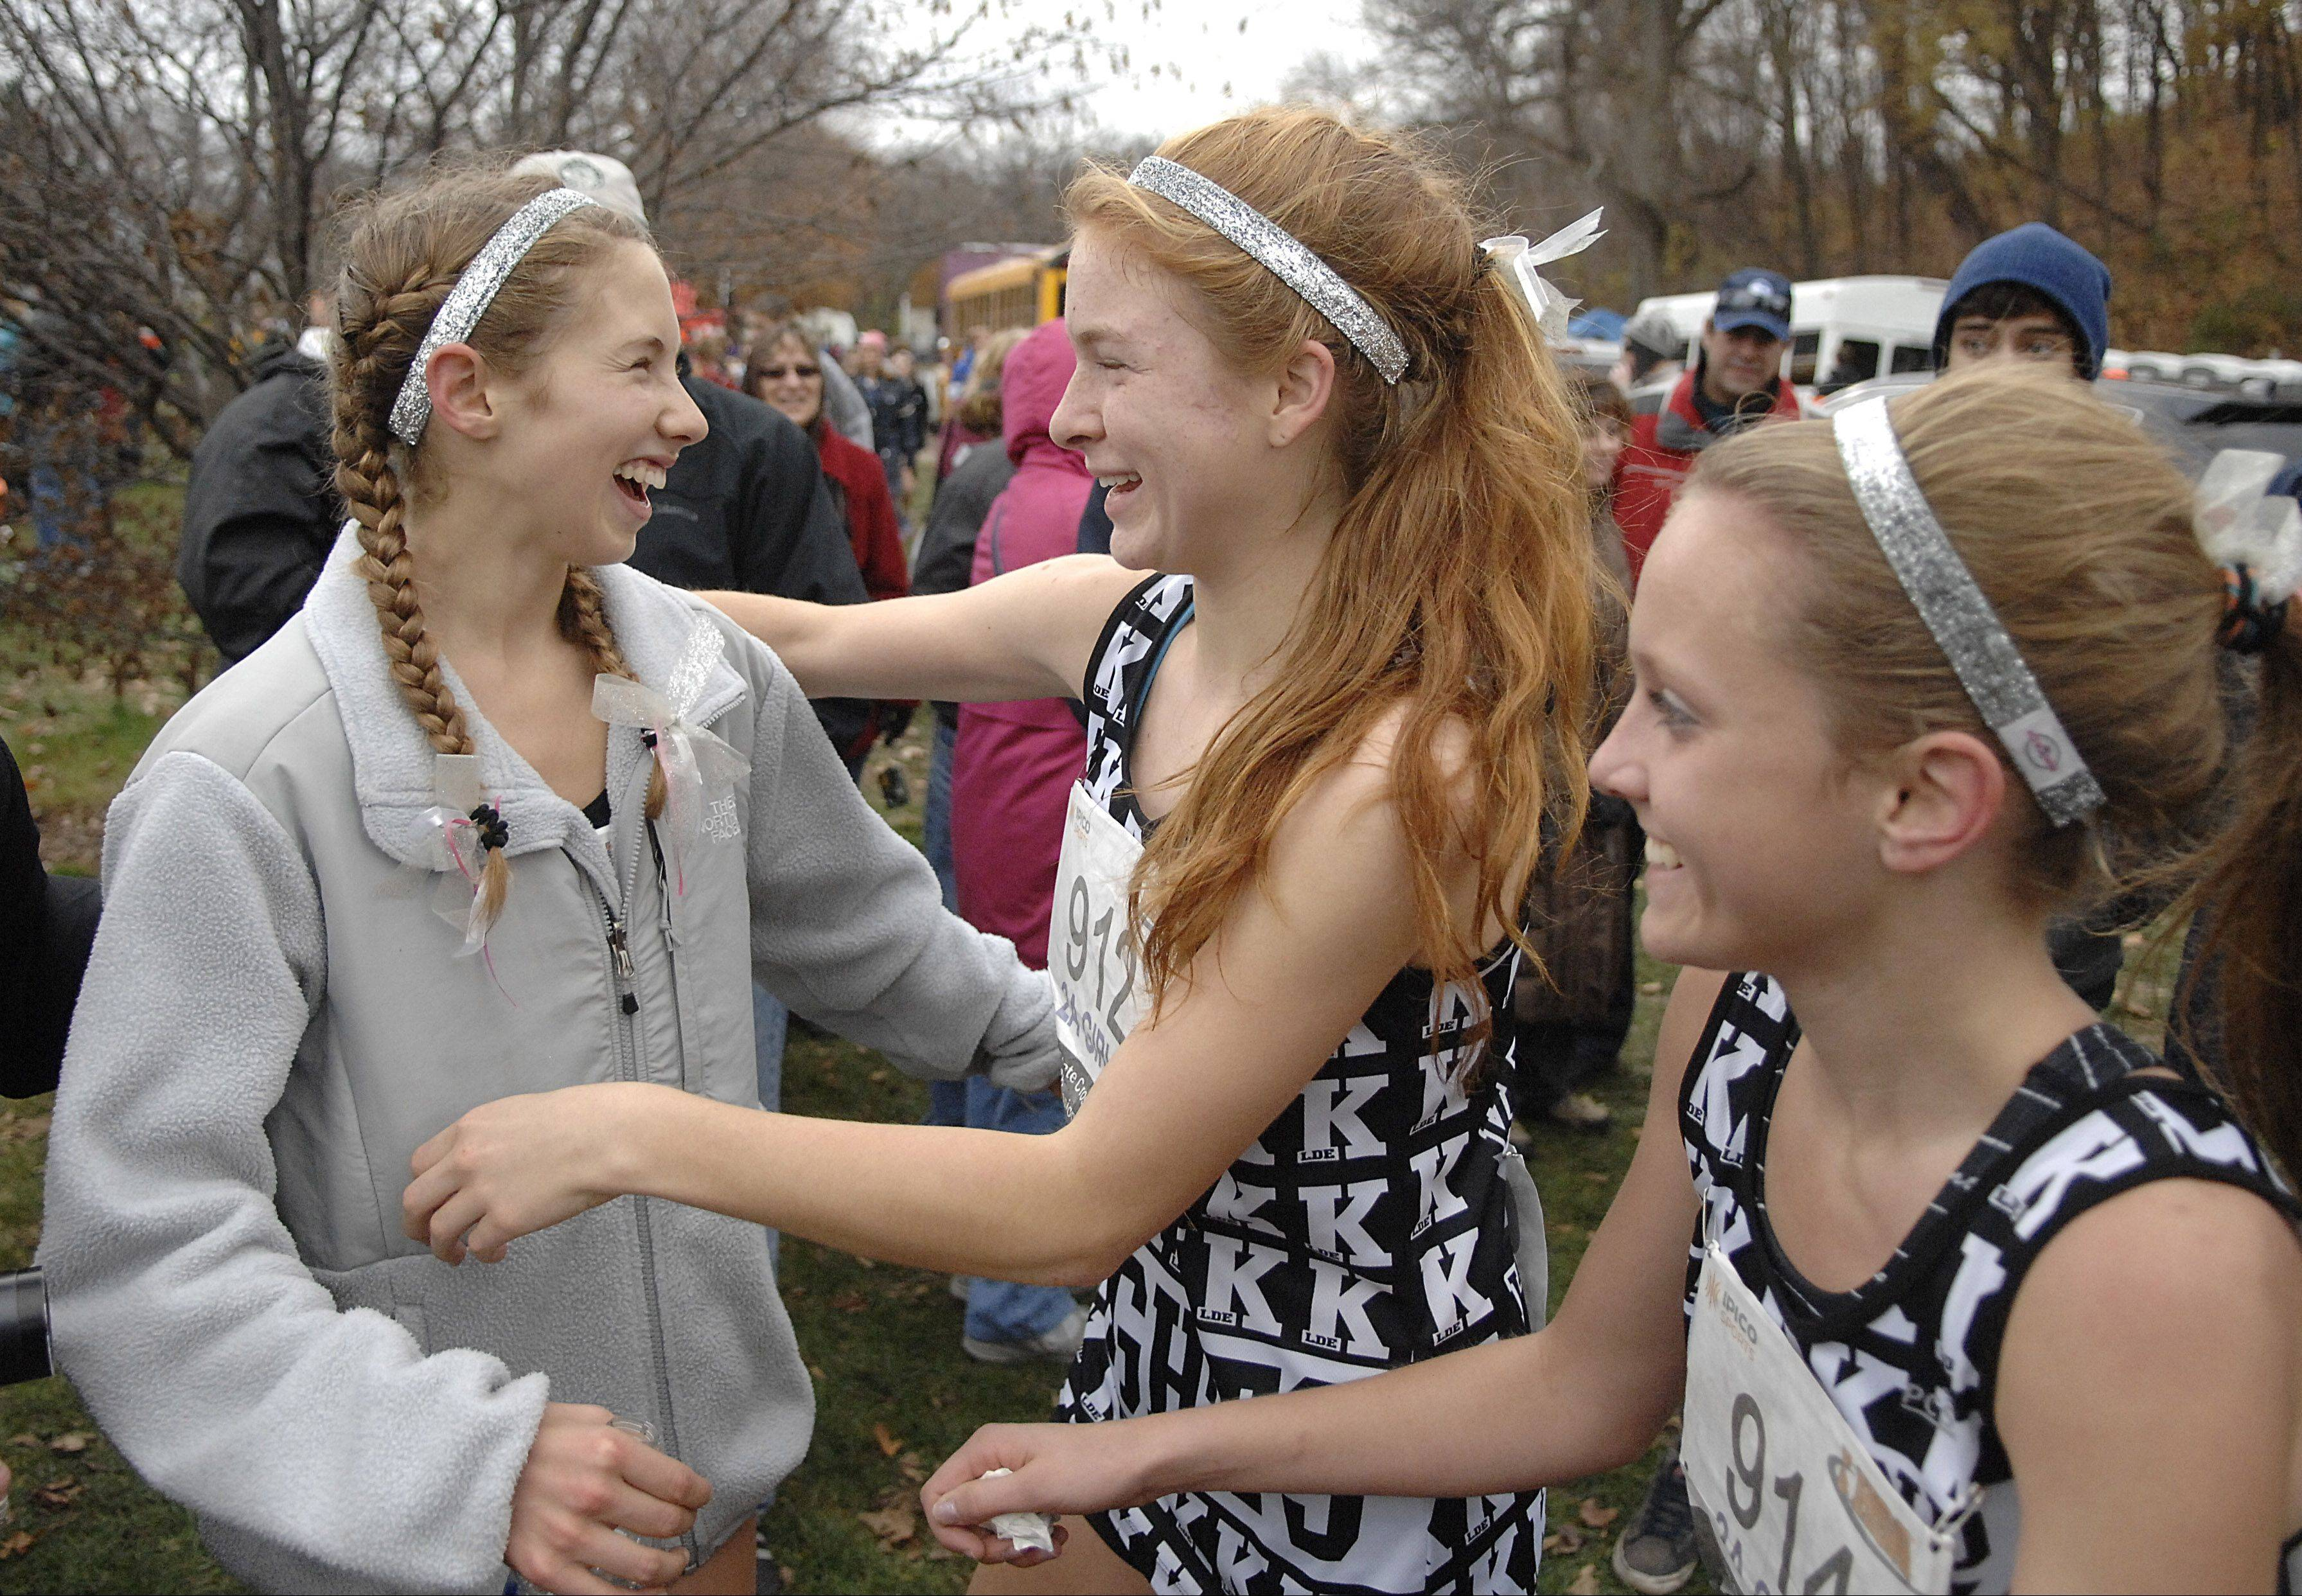 Kaneland's Victoria Clinton, left, gets hugs from teammates Aislinn Losdwig and Sydney Strang after winning the Class 2A state cross country championship in Peoria on Saturday.